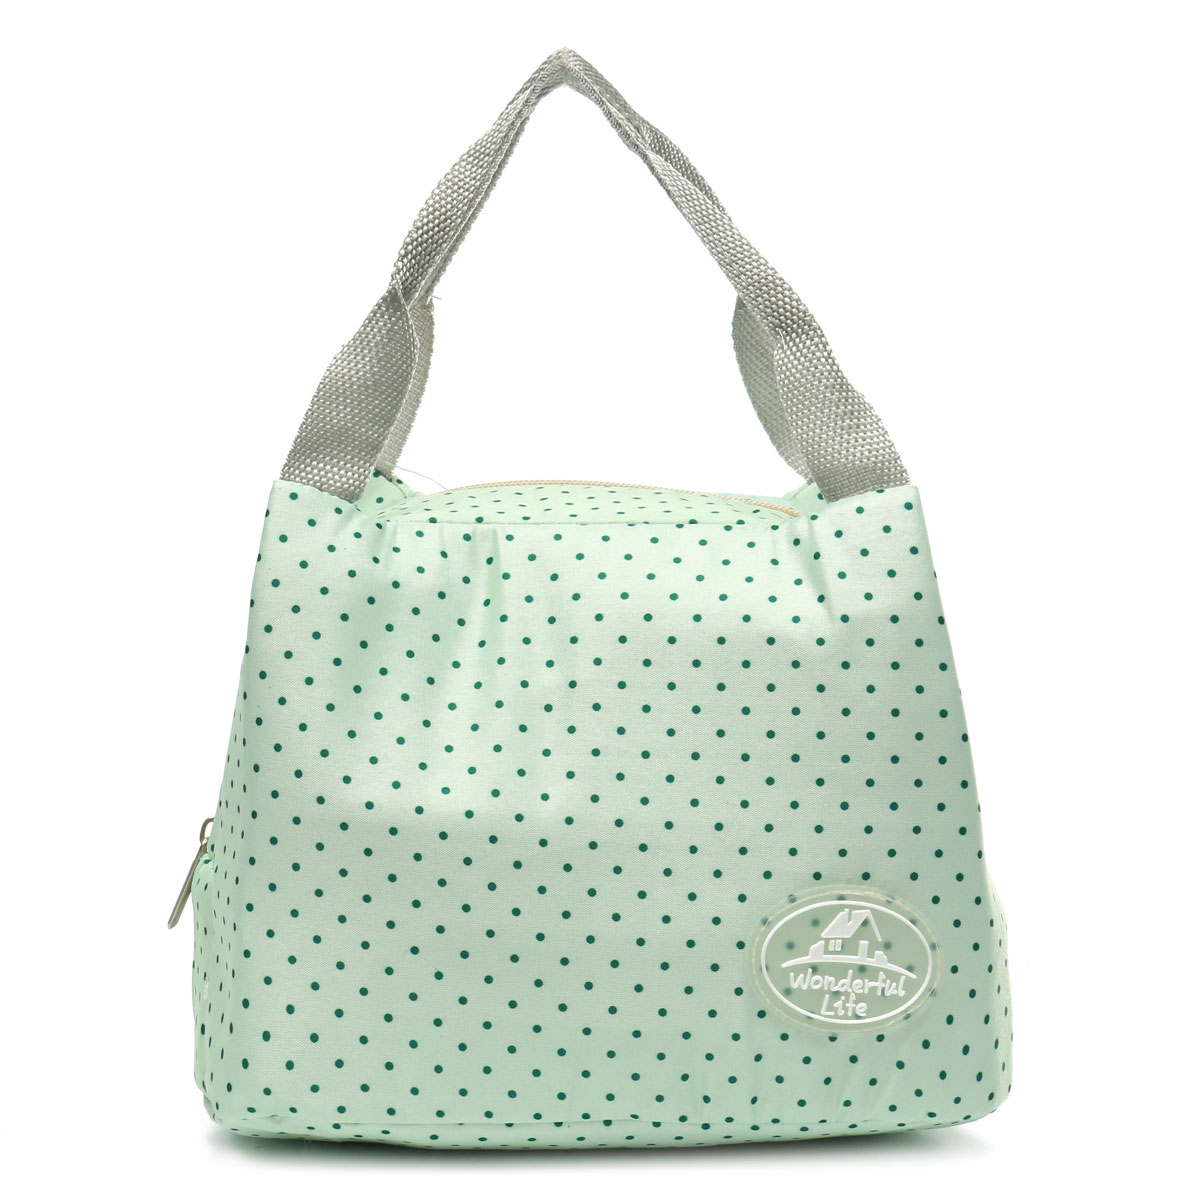 Portable Insulated Thermal Lunch Box Carry Tote Storage Bag Travel Picnic Pouch,Green Dot color